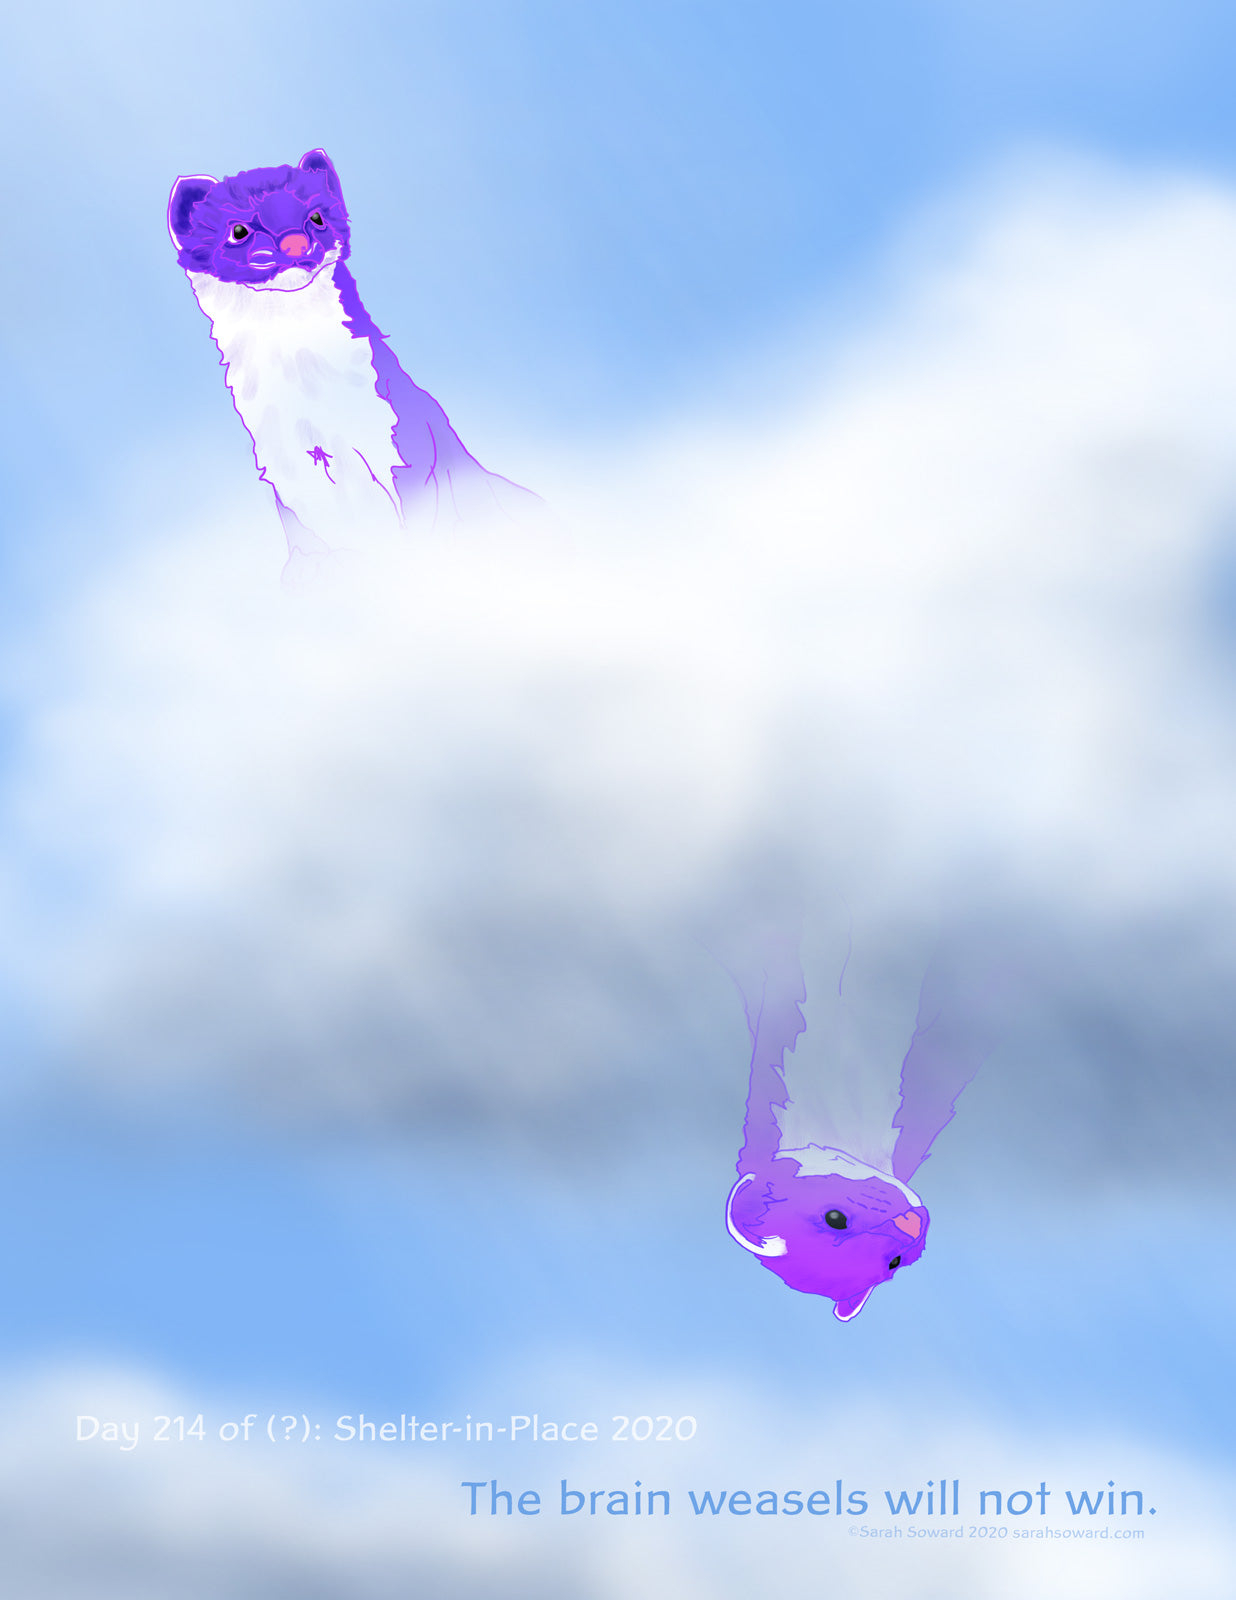 Two weasels, one purple and one magenta, pop their heads out of a of a fluffy cloud as they float through a blue sky. The text on the image reads, Day 214 of ? Shelter in Place 2020, The brain weasels will not win.